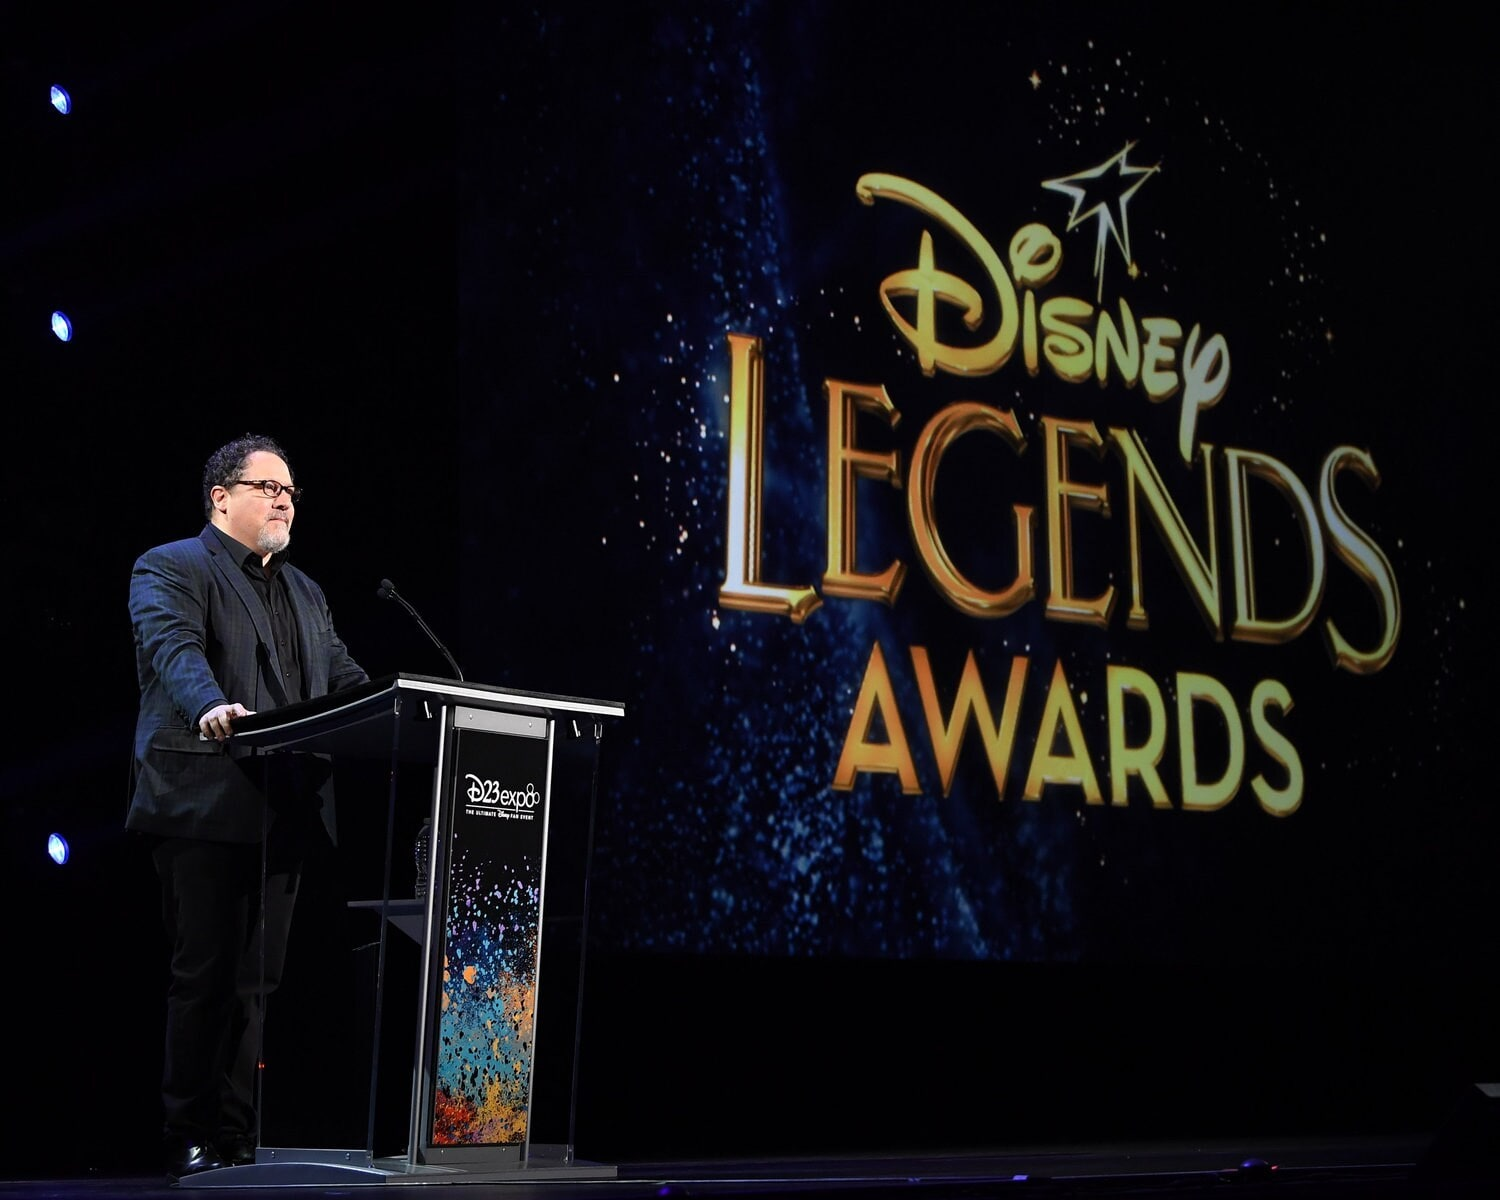 John Favreau at the Disney Legends Awards podium